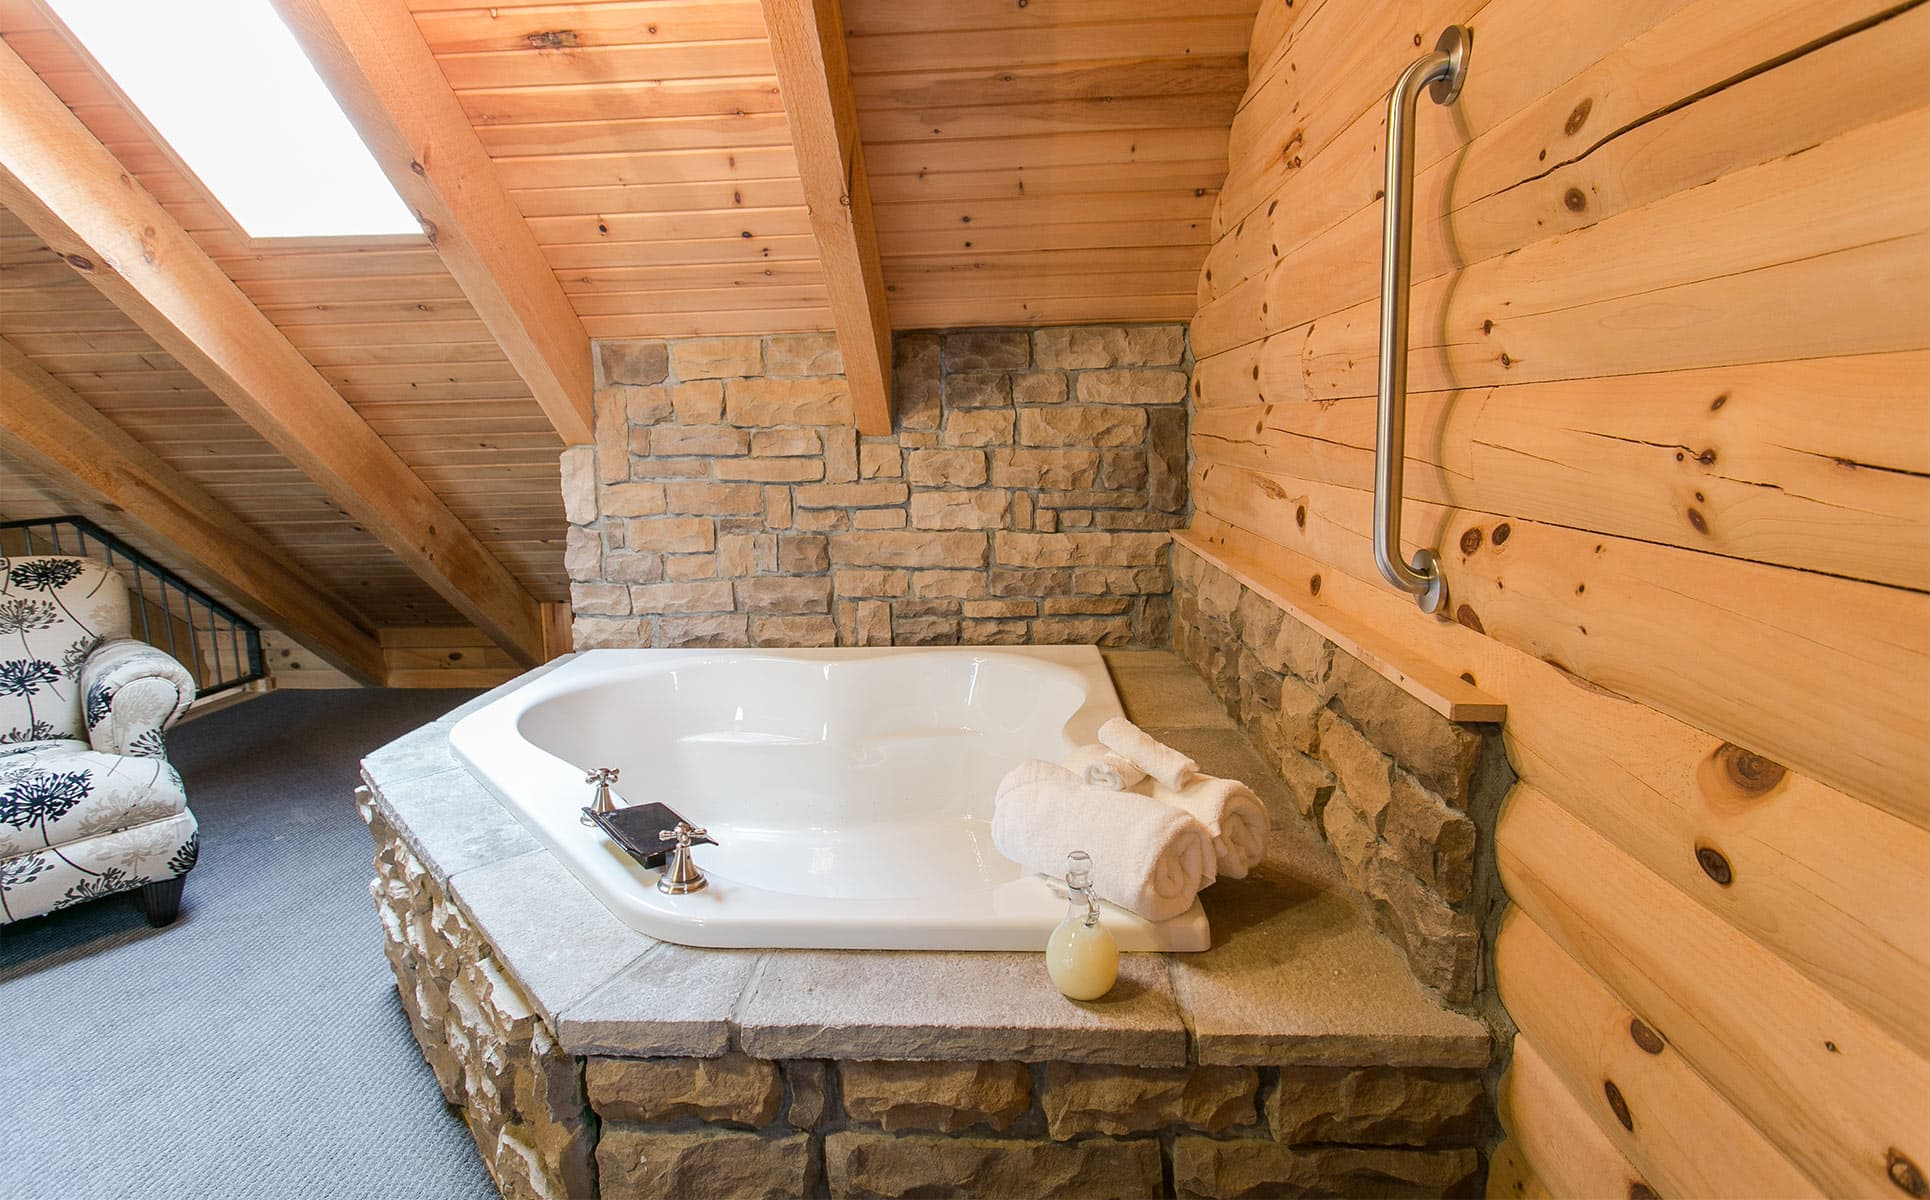 Stone two-person jetted tub